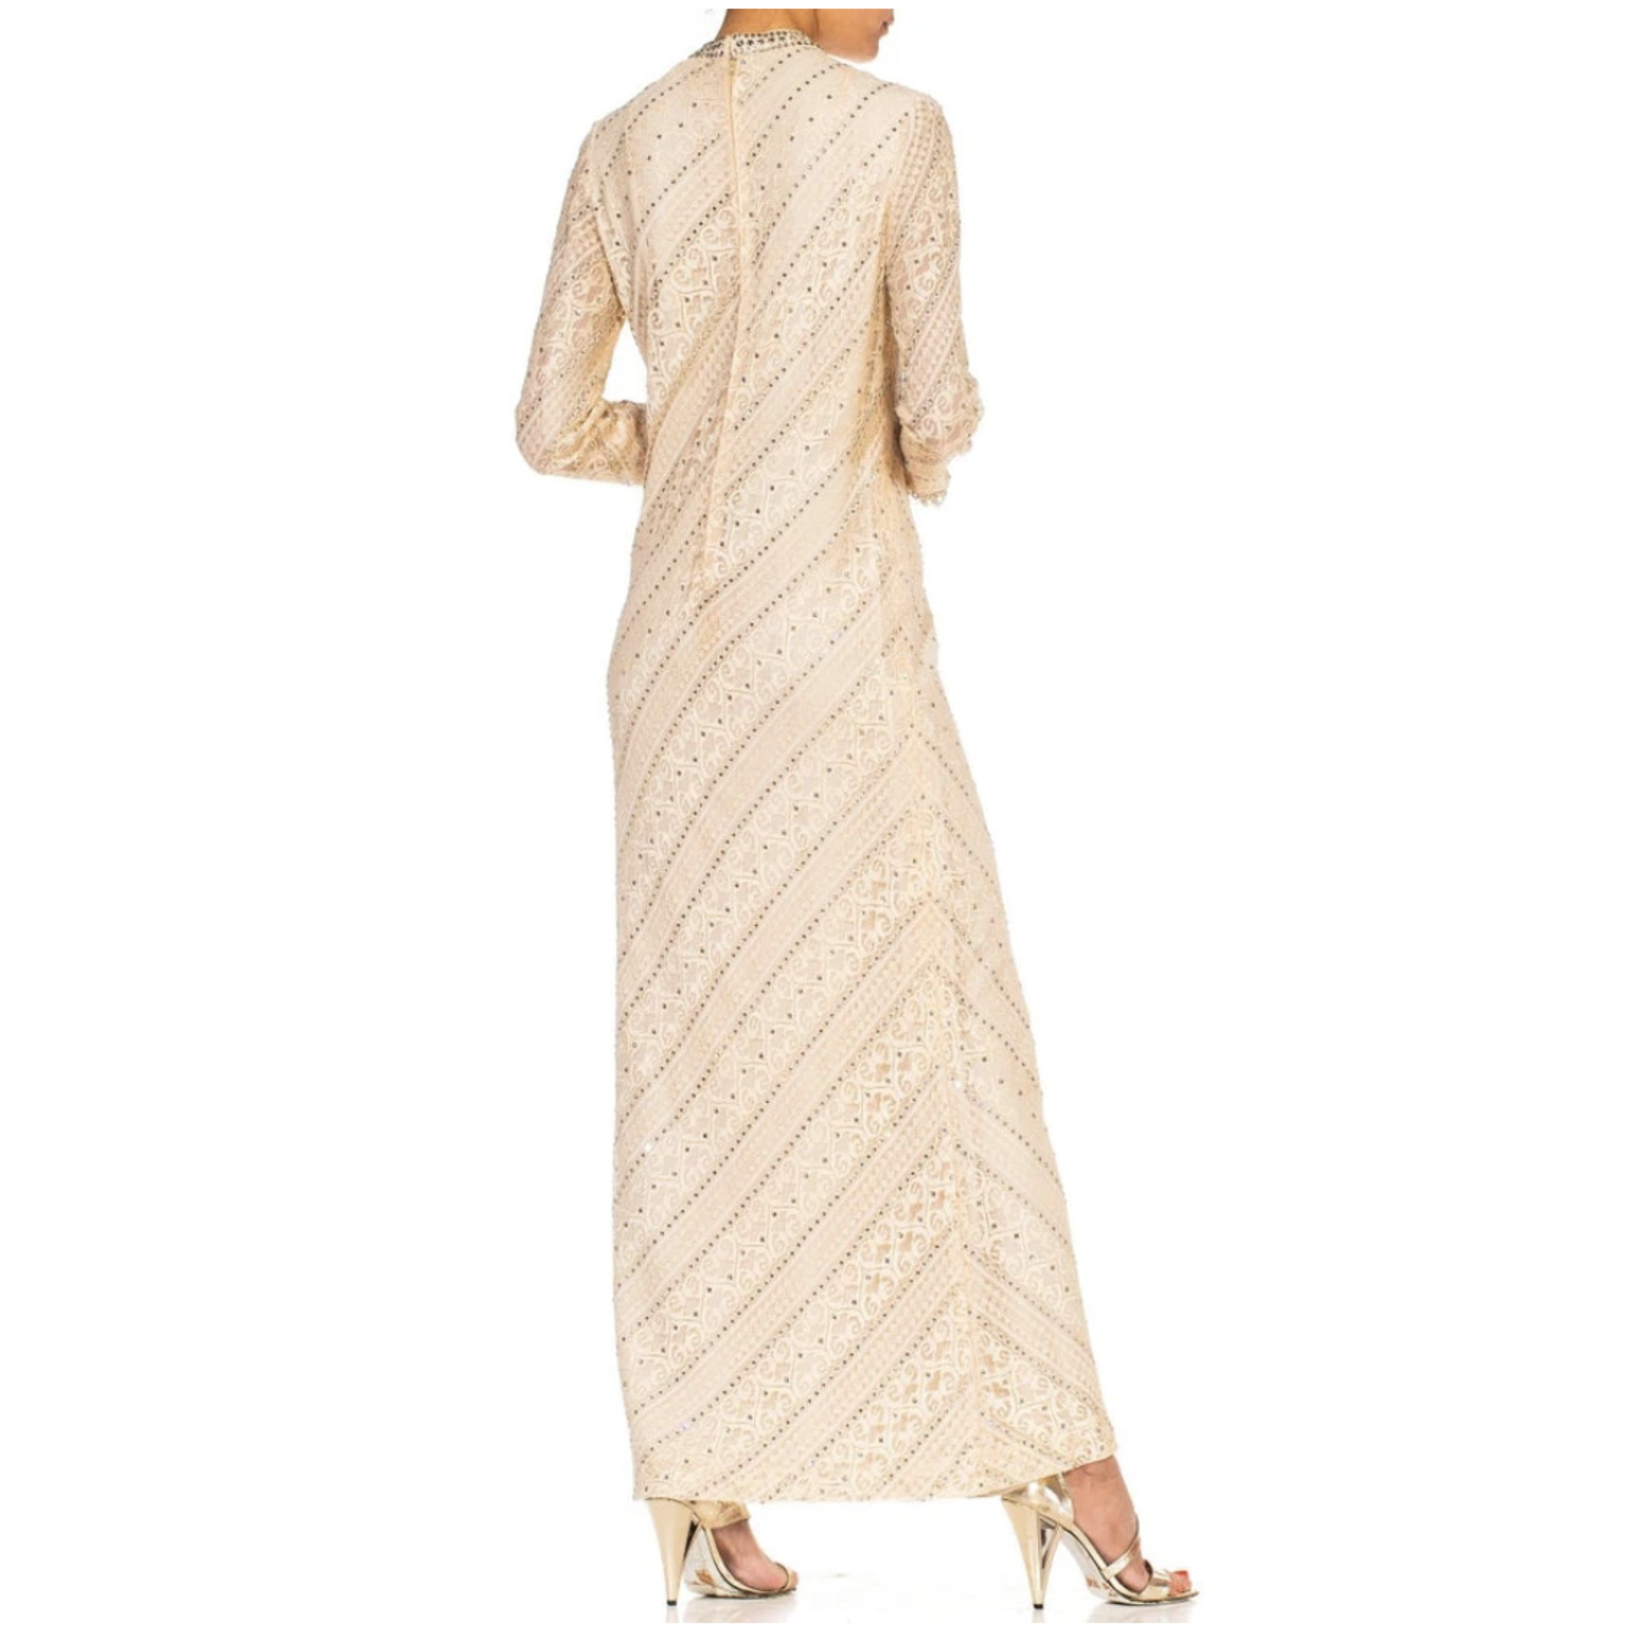 Morphew 1960s Cream Rayon Blend Lace Sleeved Gown Covered in Crystals